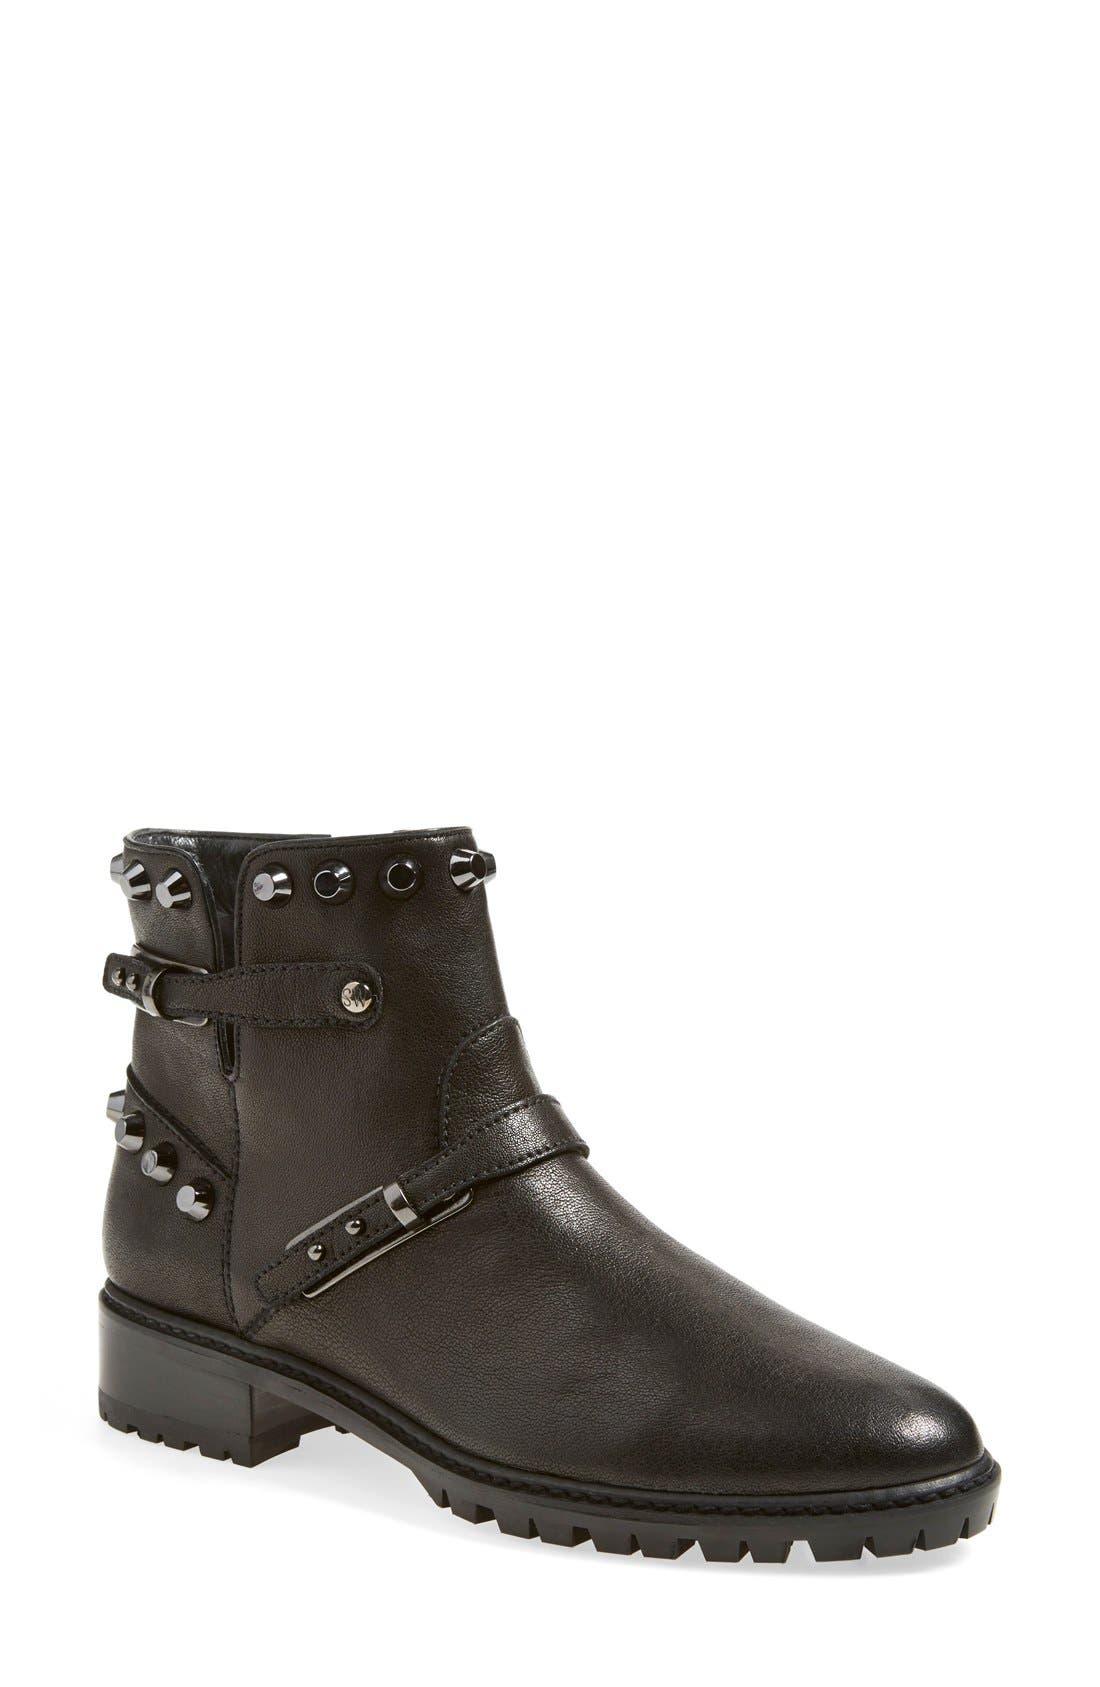 'Go West' Studded Bootie, Main, color, 001